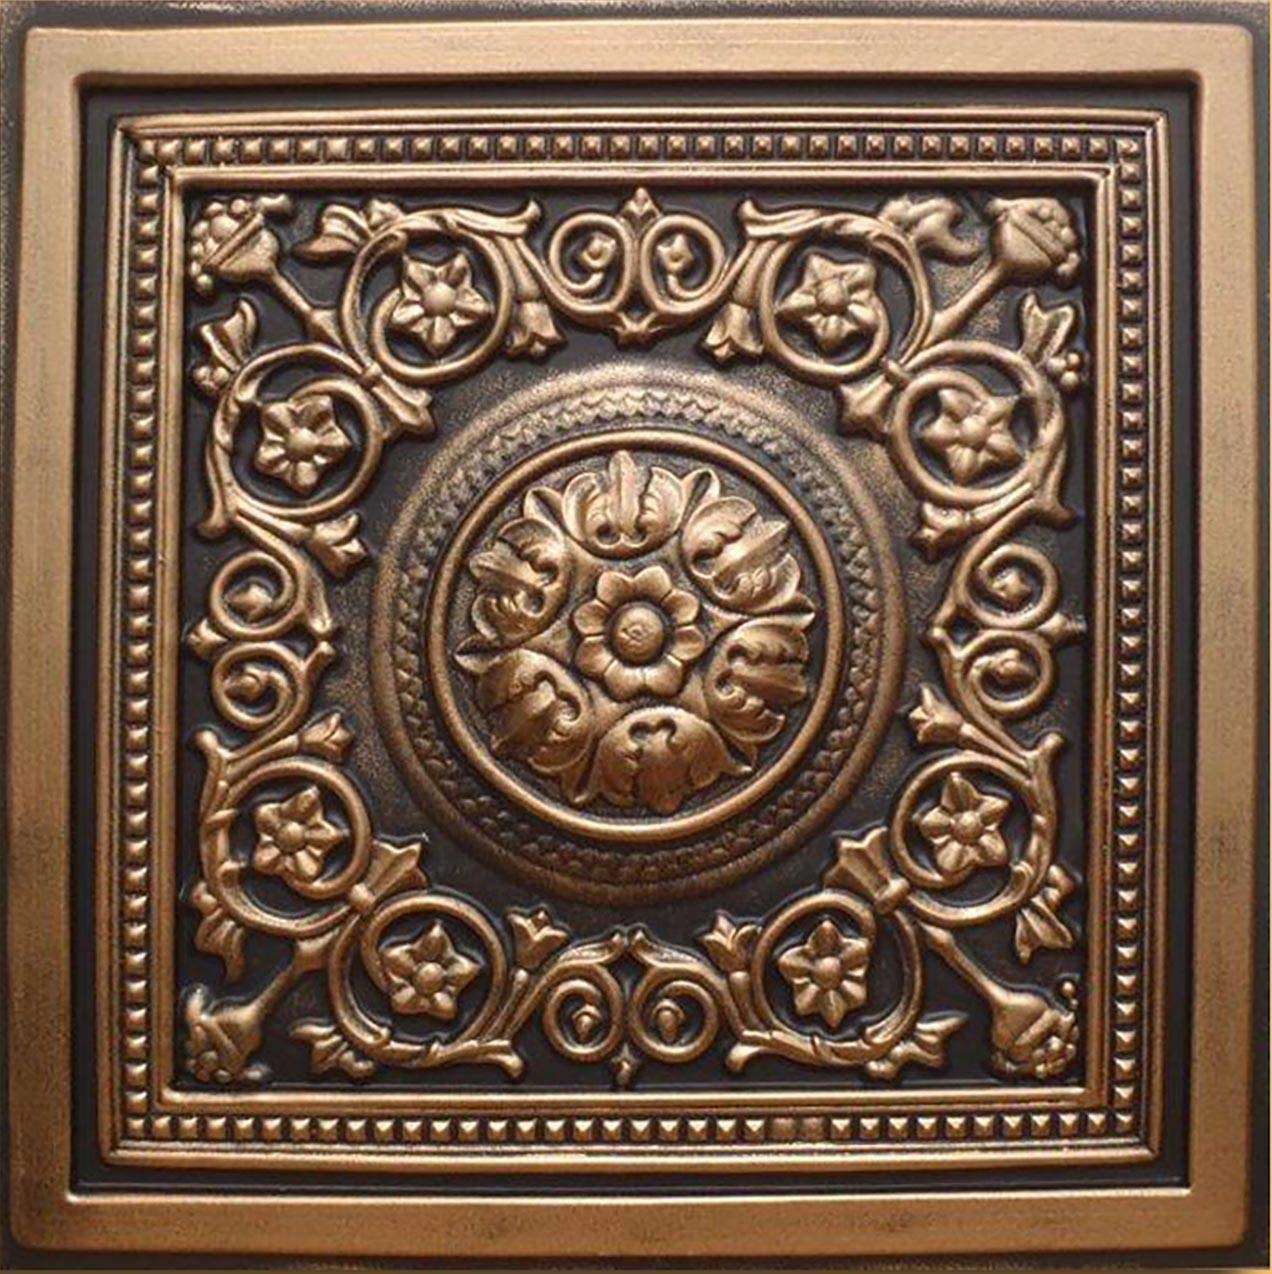 30pc of Majesty Bronze/Black (24''x24'' PVC 20 mil) Ceiling Tiles - Covers About 120sqft by Antique Ceilings (Image #1)